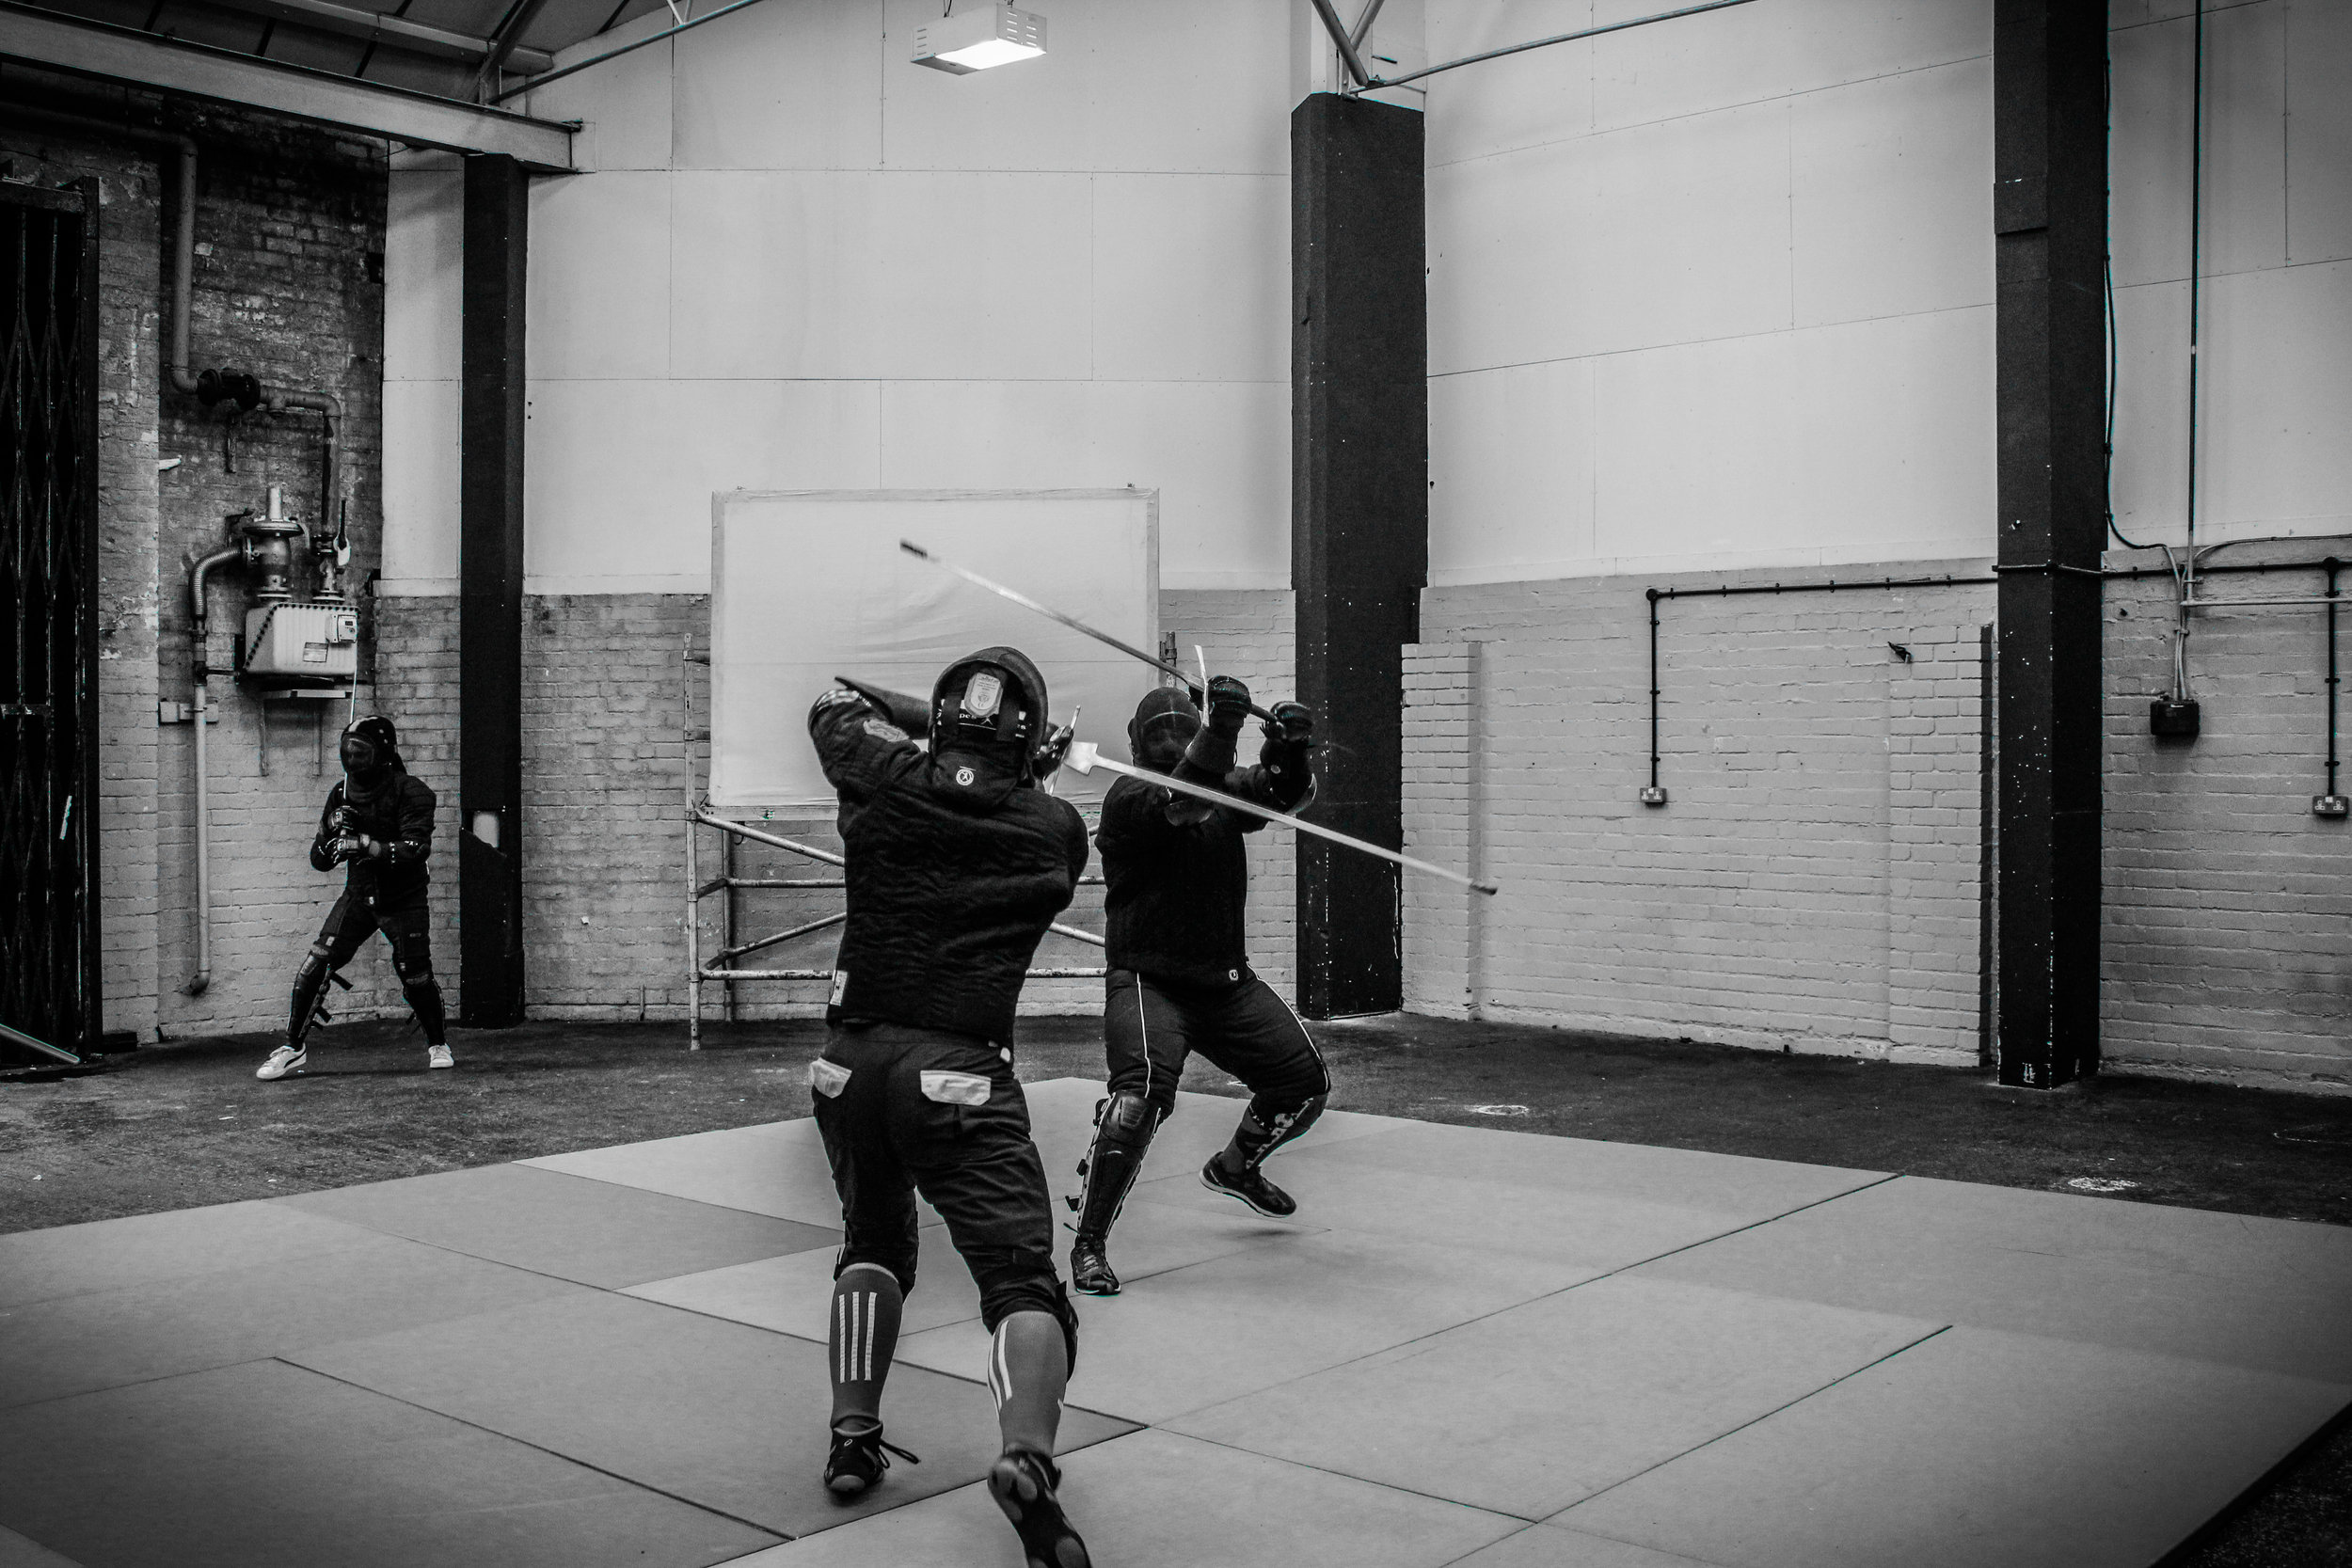 Martial Arts Tuition - Classes, Courses, workshops and one-to-one tuition in armed and unarmed Historical European Martial arts